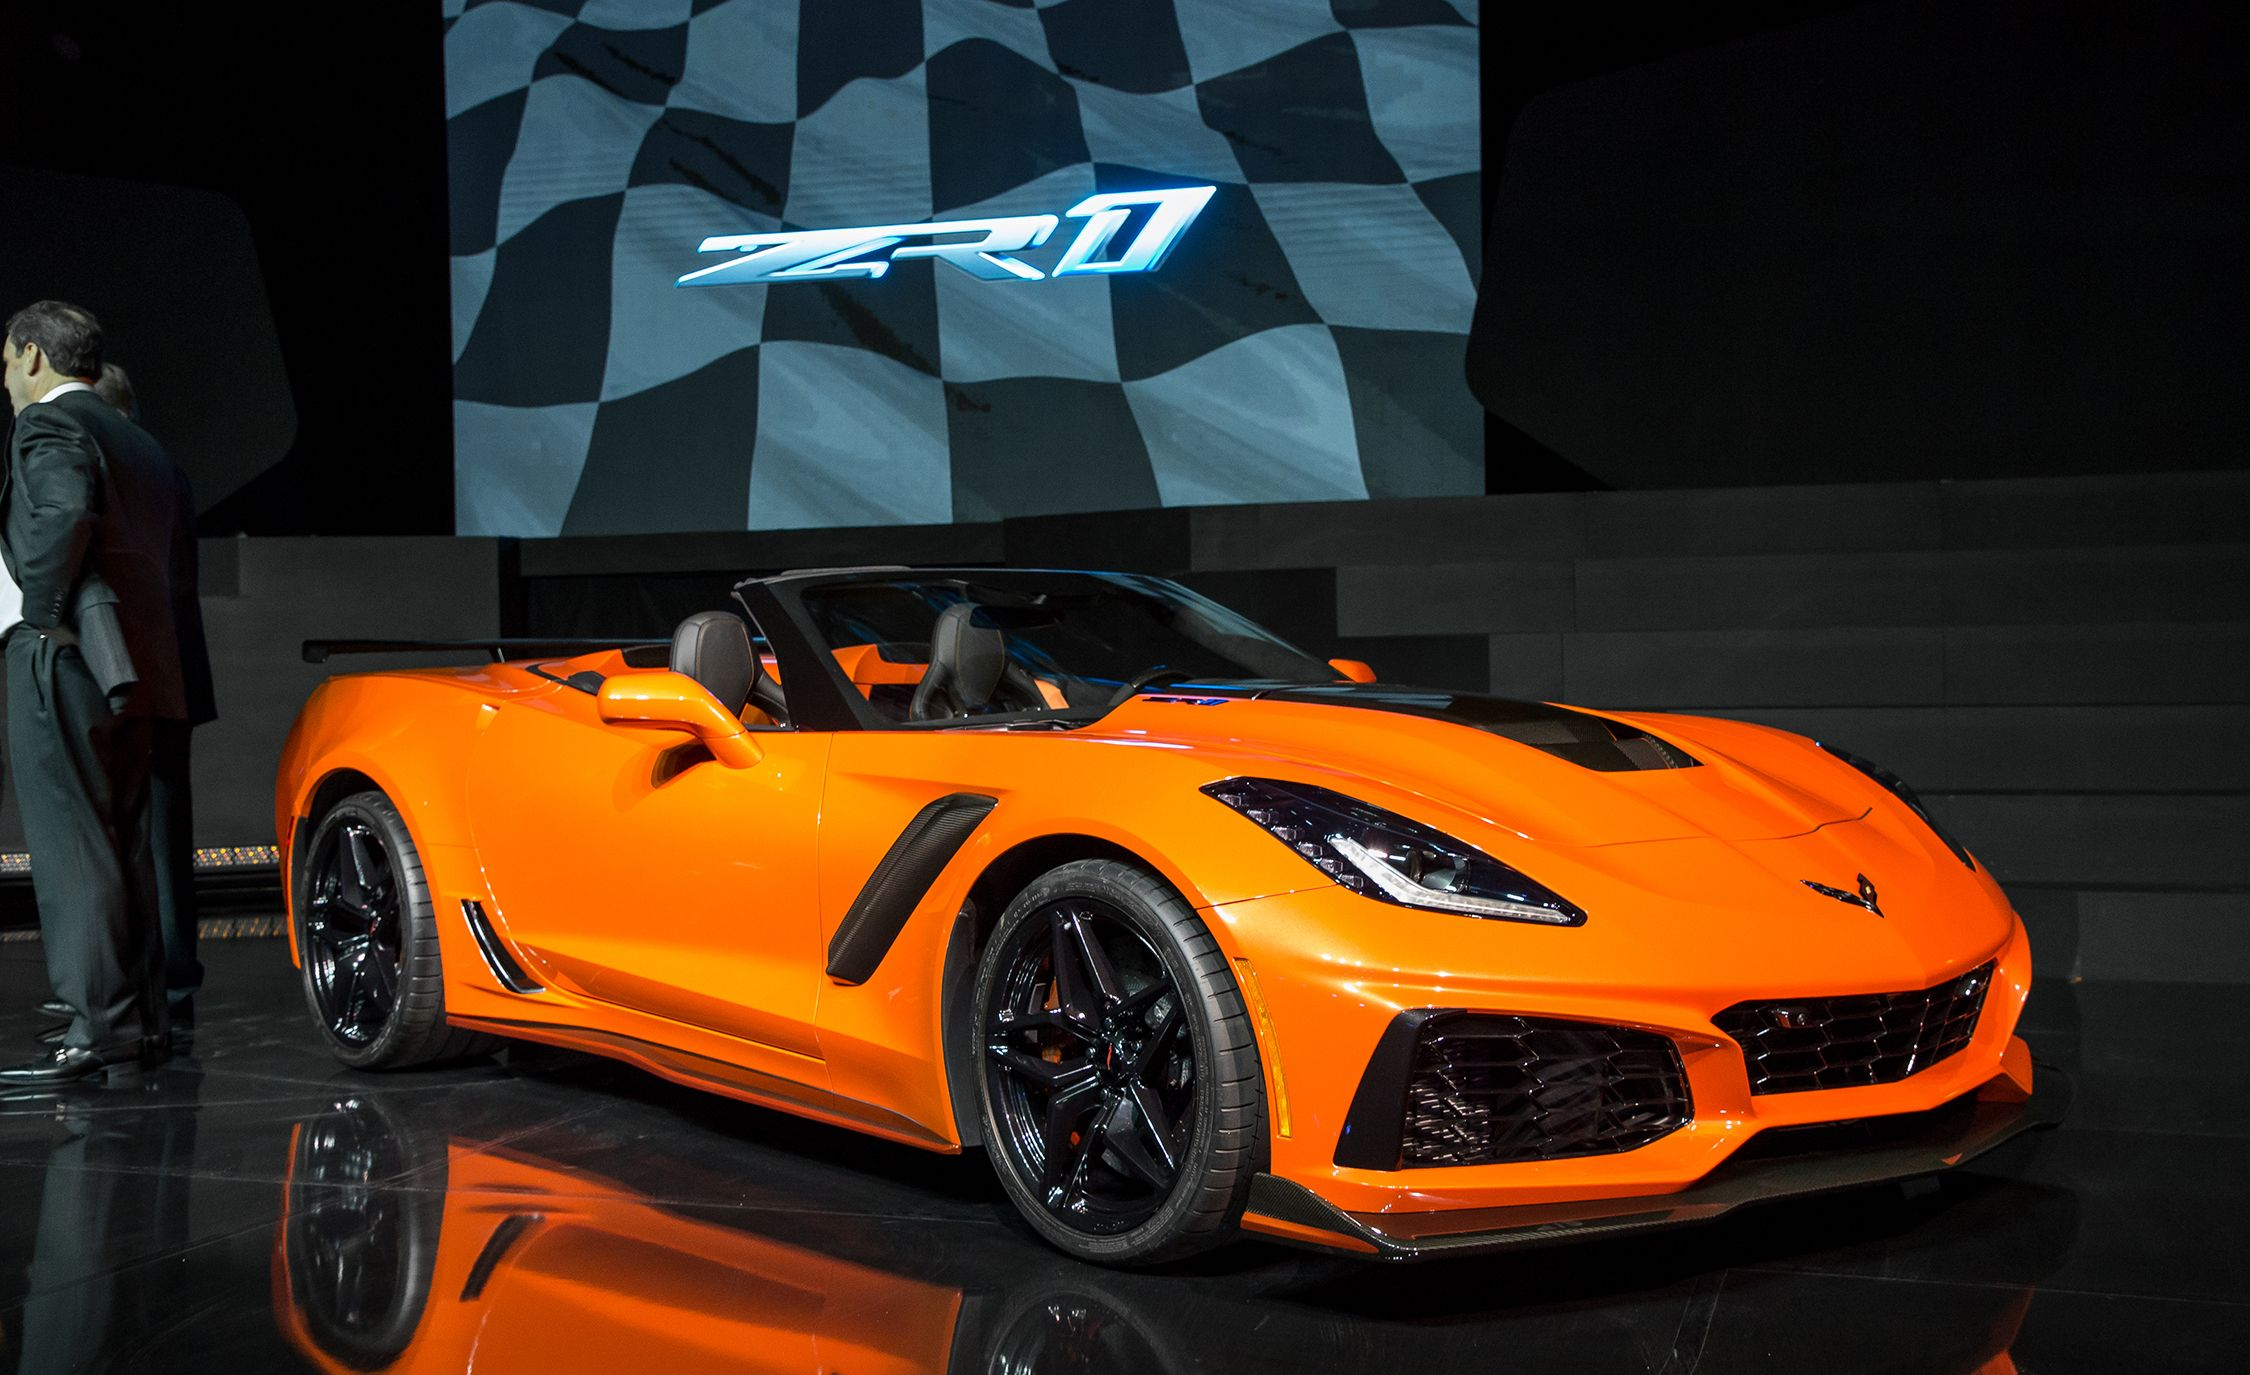 2019 Chevrolet Corvette Zr1 Reviews Chevrolet Corvette Zr1 Price